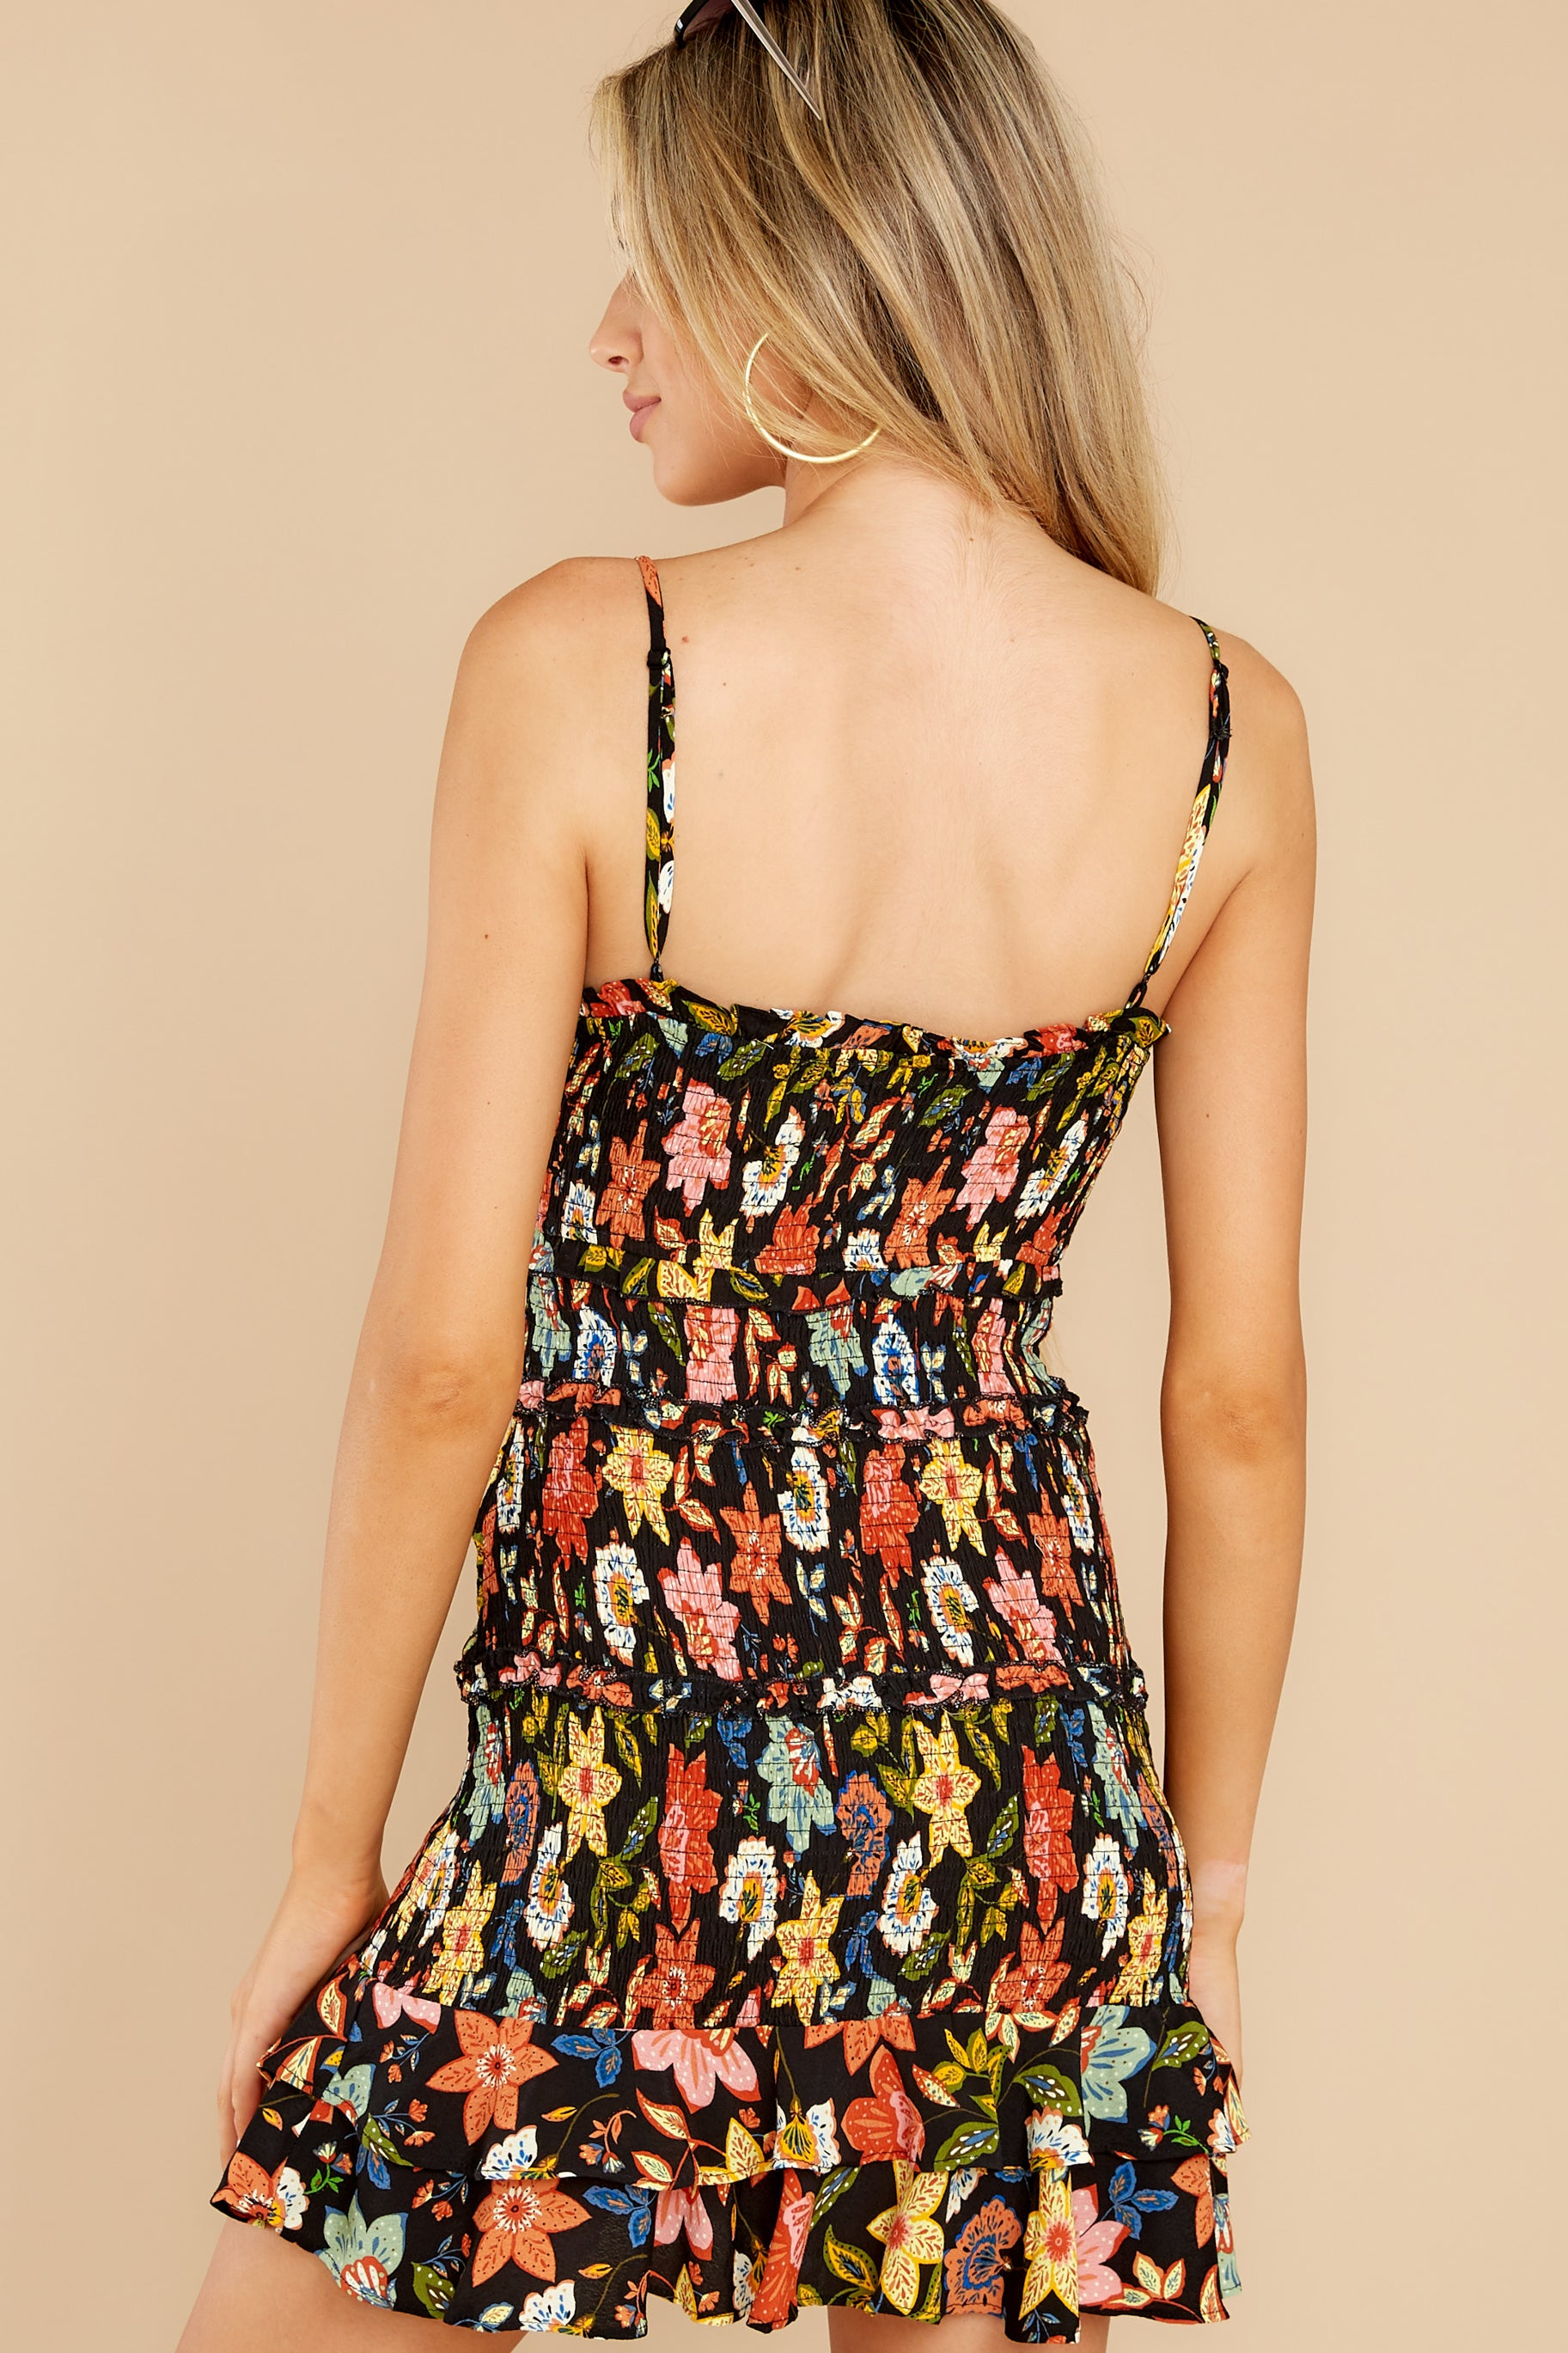 8 I'm Used To It Black Floral Print Dress at reddress.com